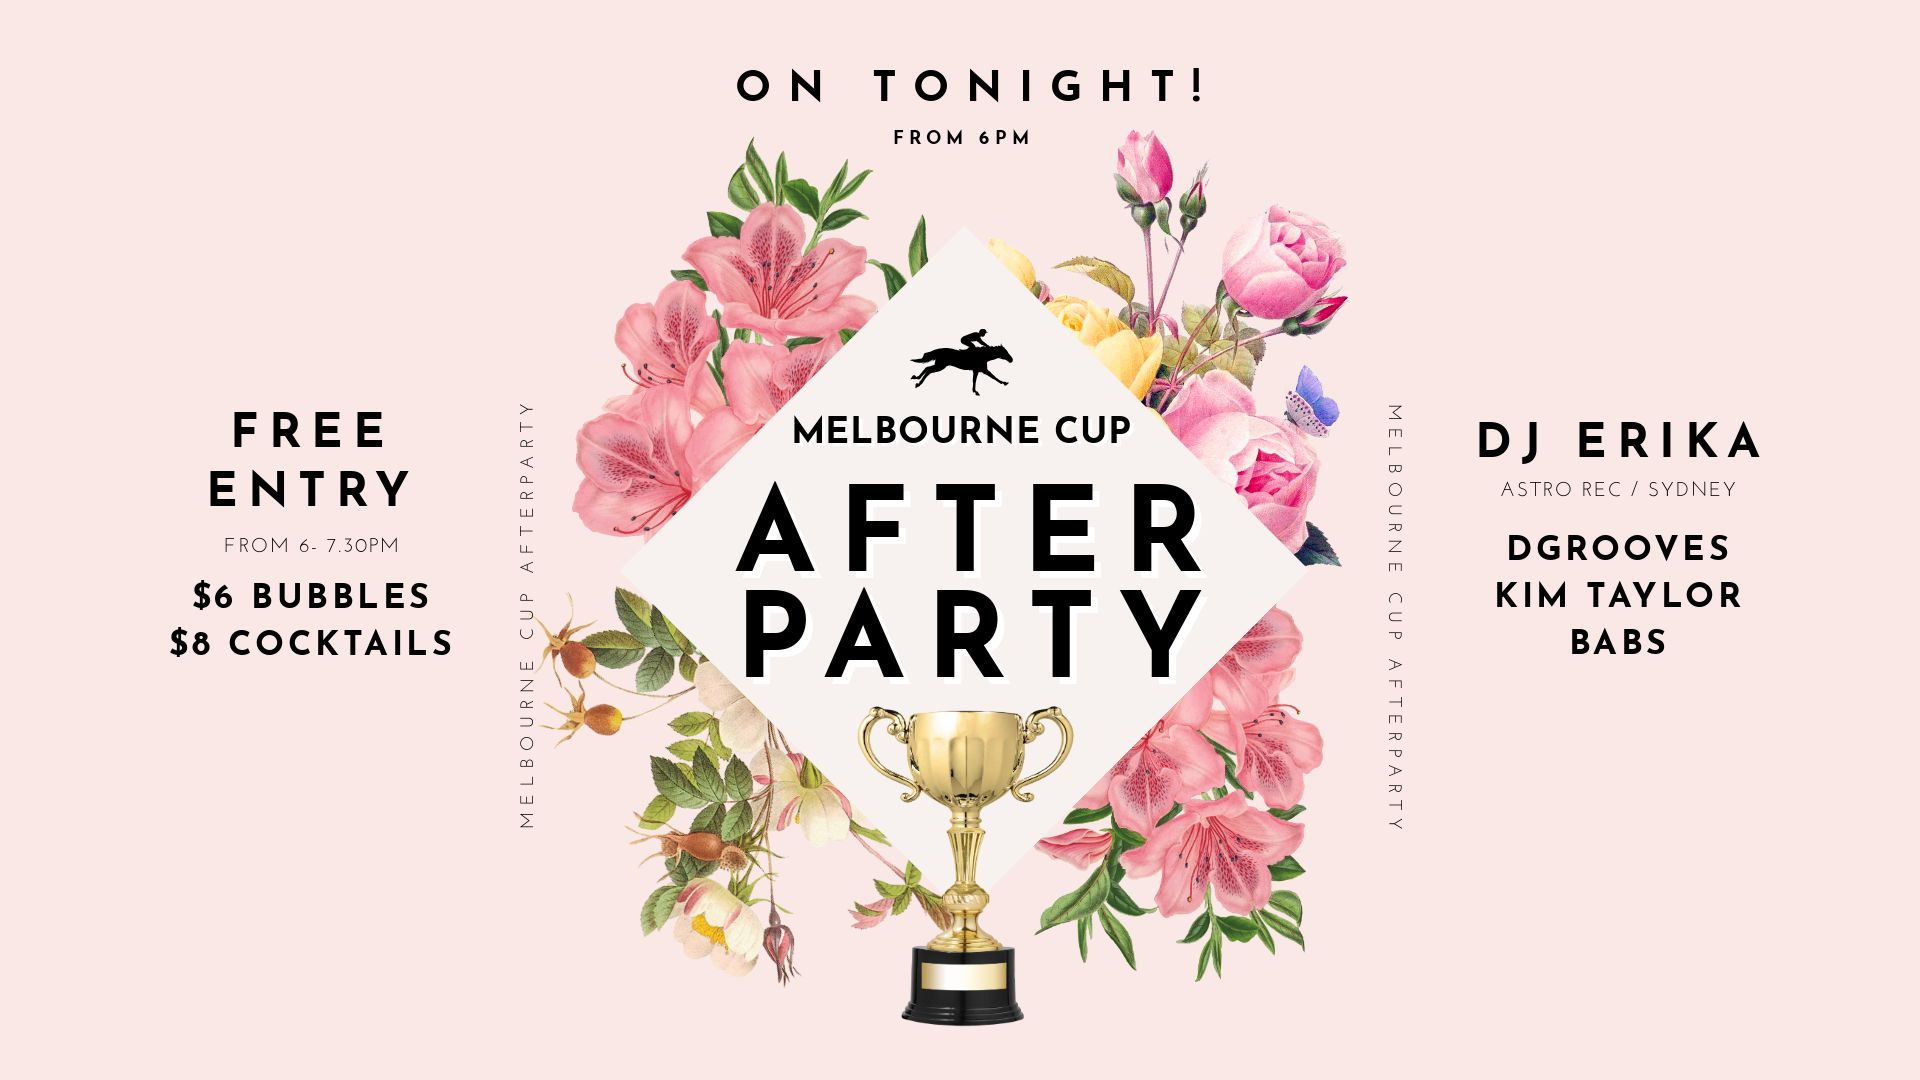 Melbourne Cup After Party Design by Easil - How to run a Successful Melbourne Cup Promotion without a Designer